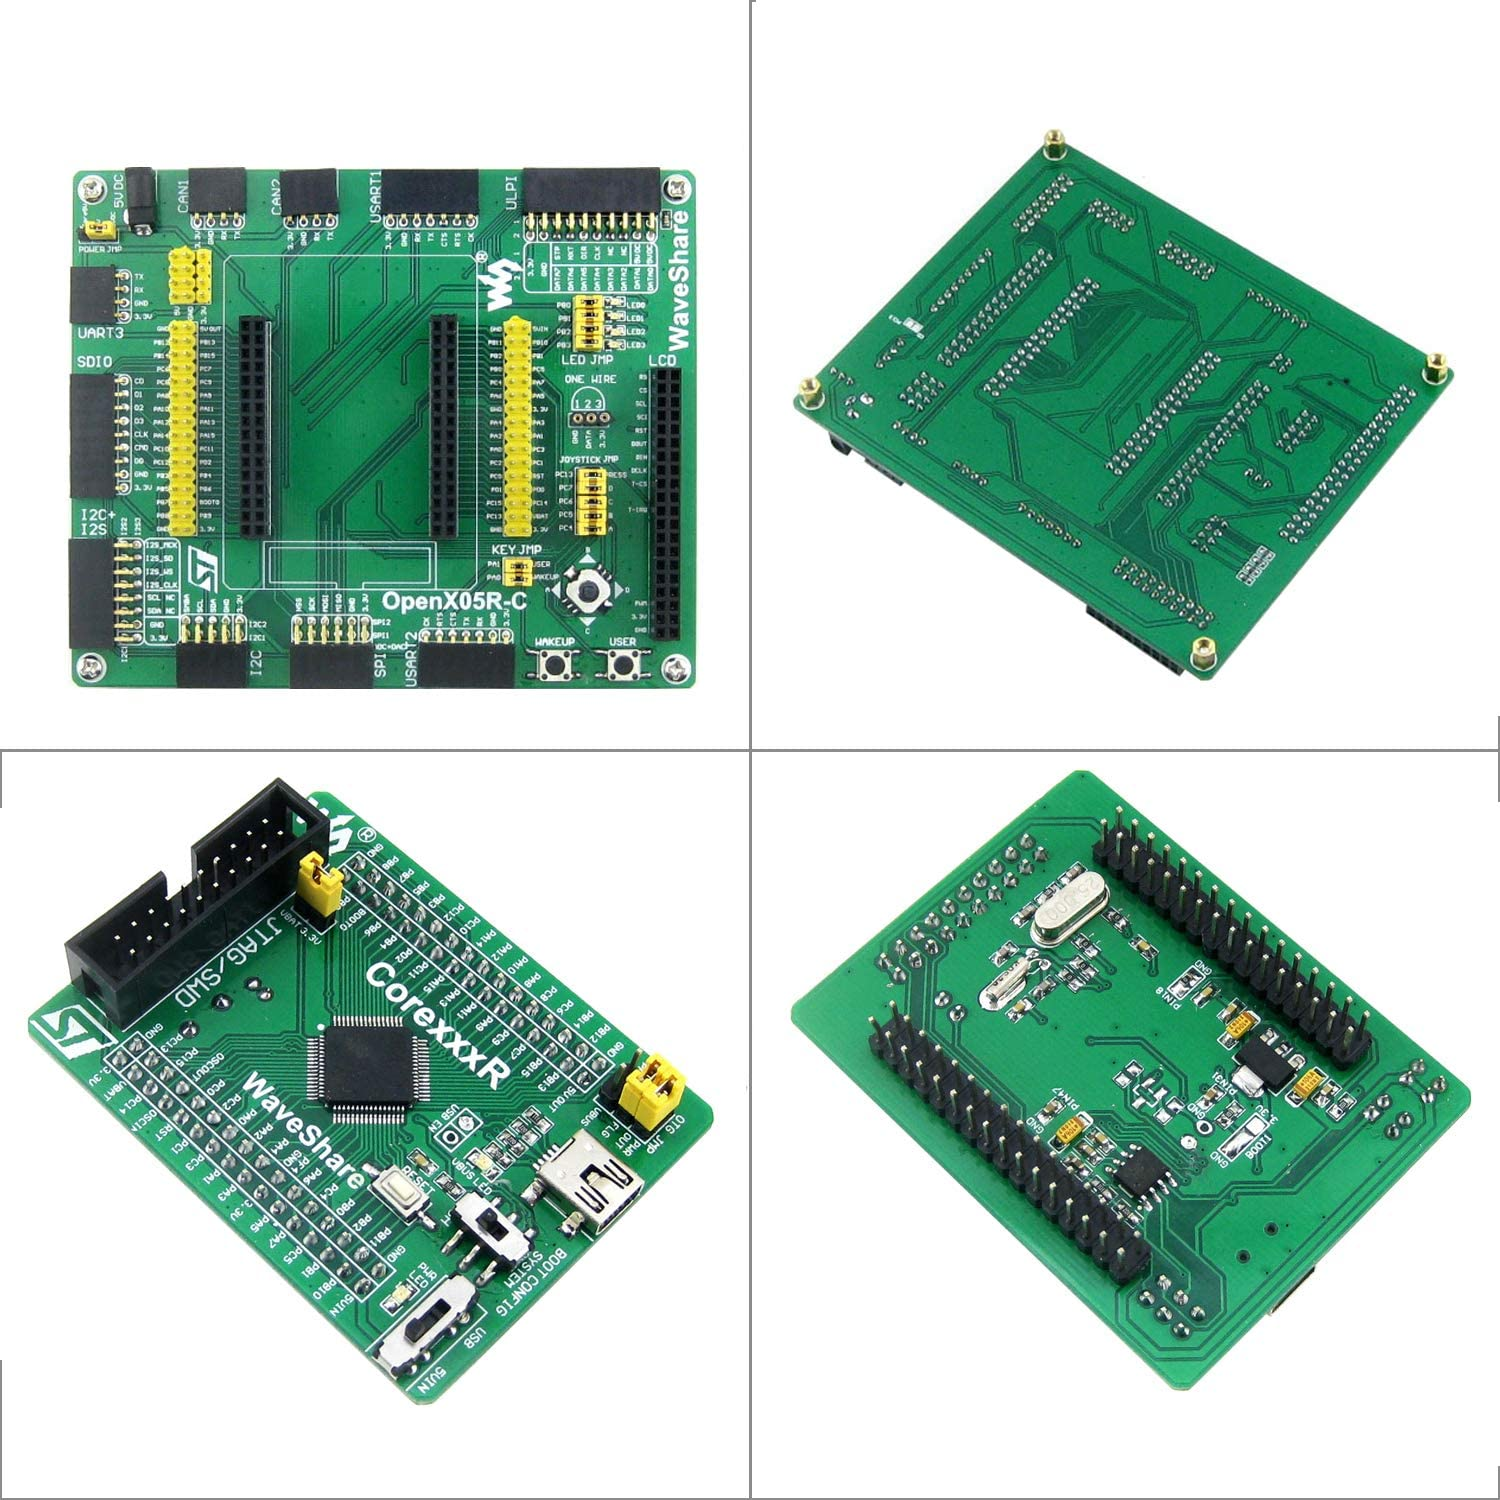 pzsmocn STM32F405Rgt6 MCU Stm32 Development Board Open405R-C,Core Board Core407R,Rich Interface,Supports Access to Various Peripheral Modules.